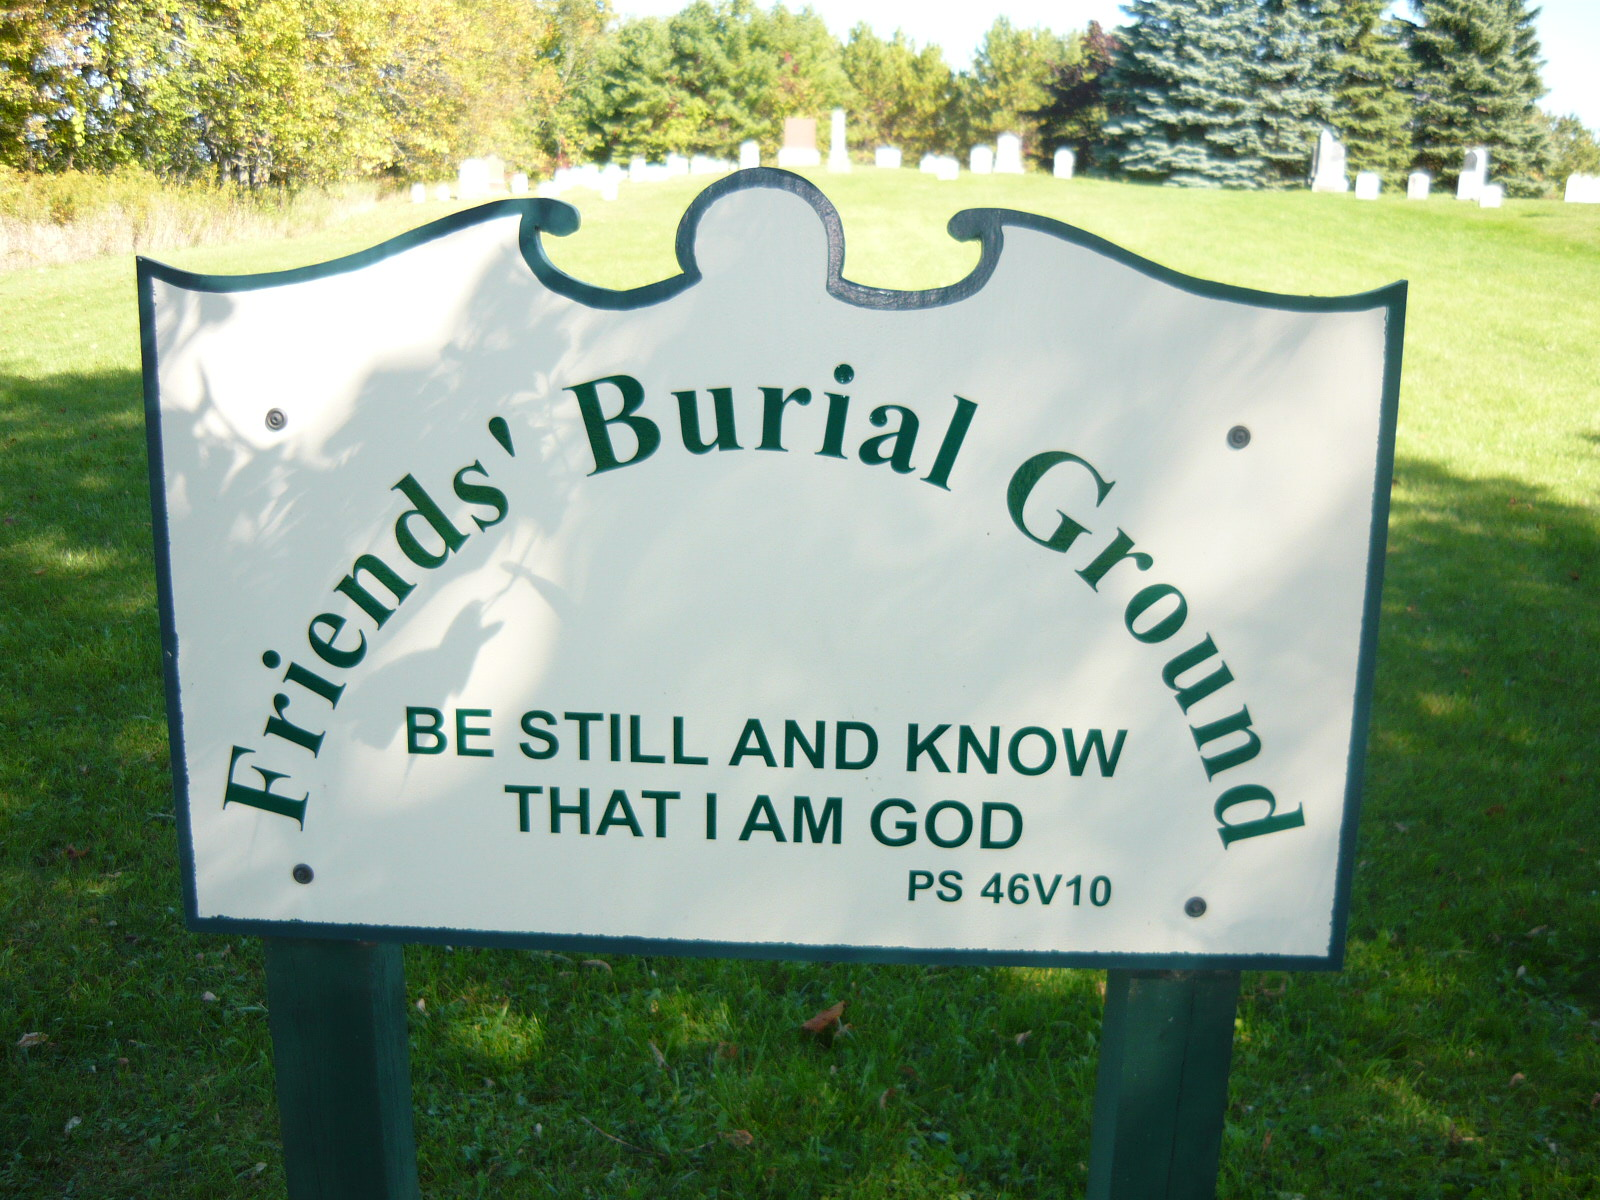 Friend's Burial Ground